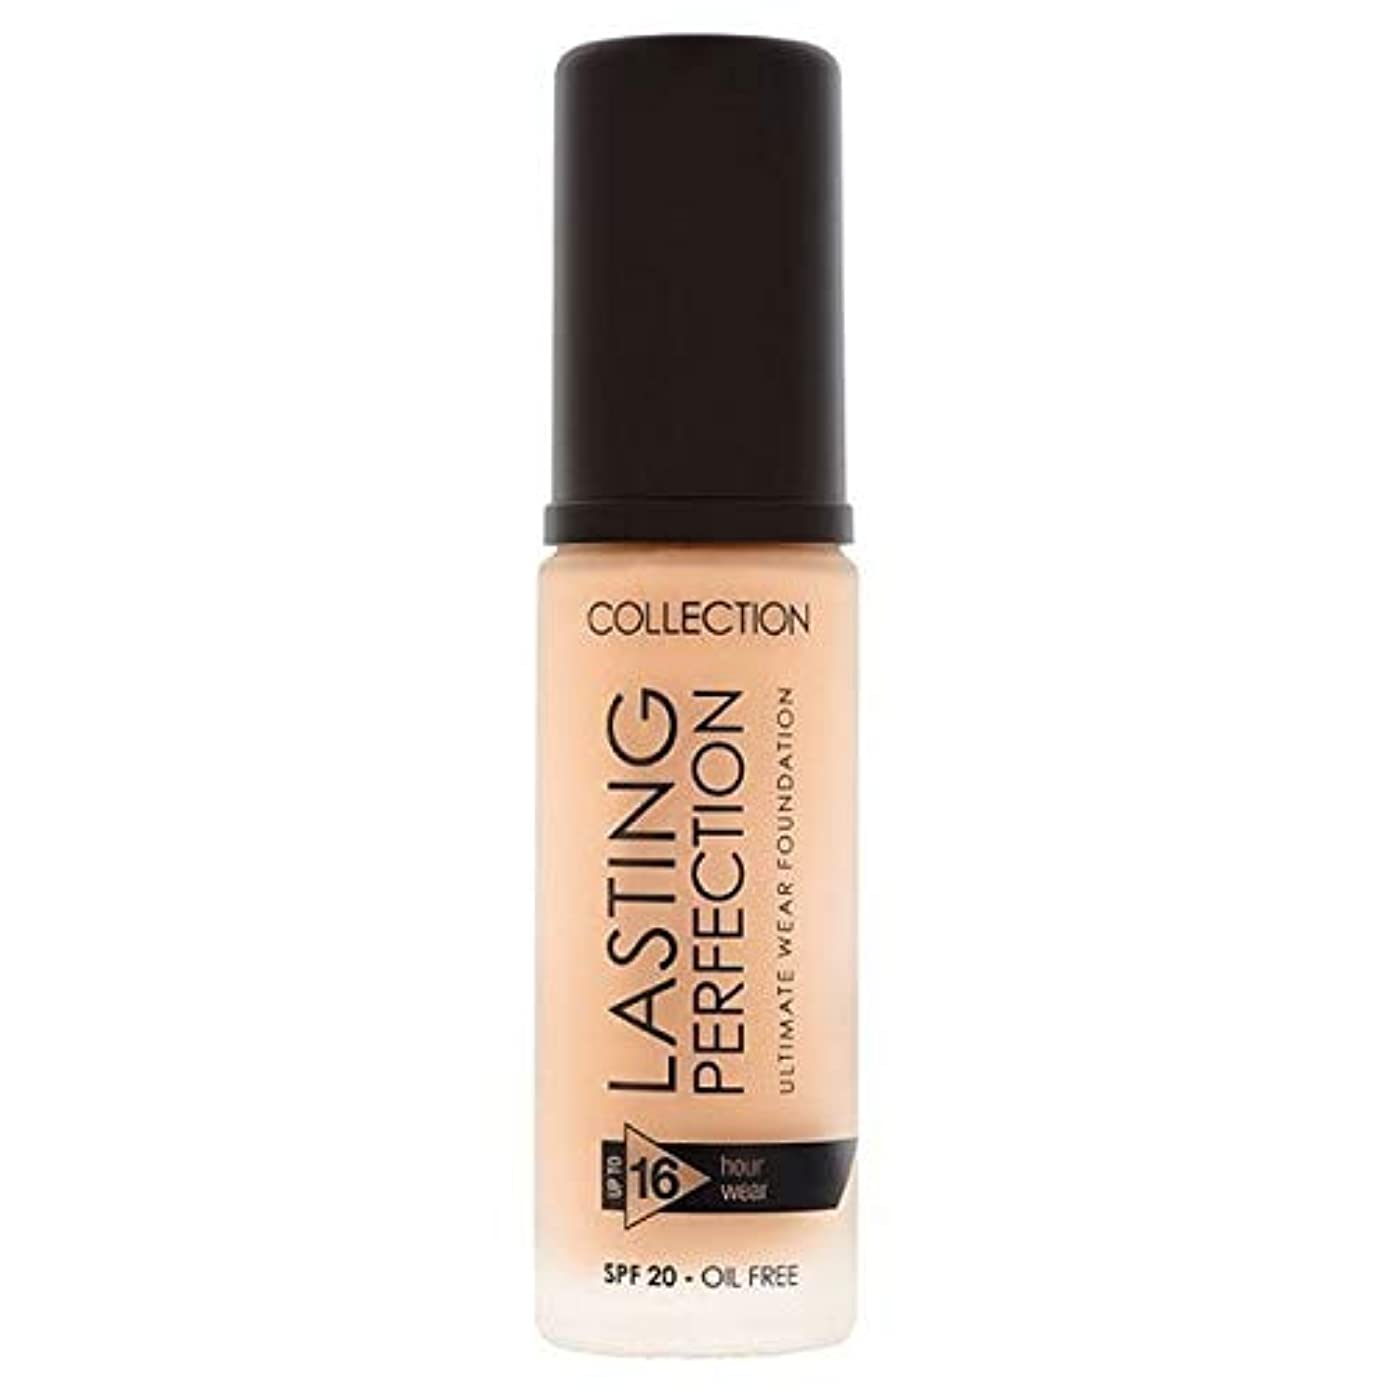 [Collection ] コレクション持続的な完成度の基礎30ミリリットルクールキャラメル7 - Collection Lasting Perfection Foundation 30ml Cool Caramel 7...